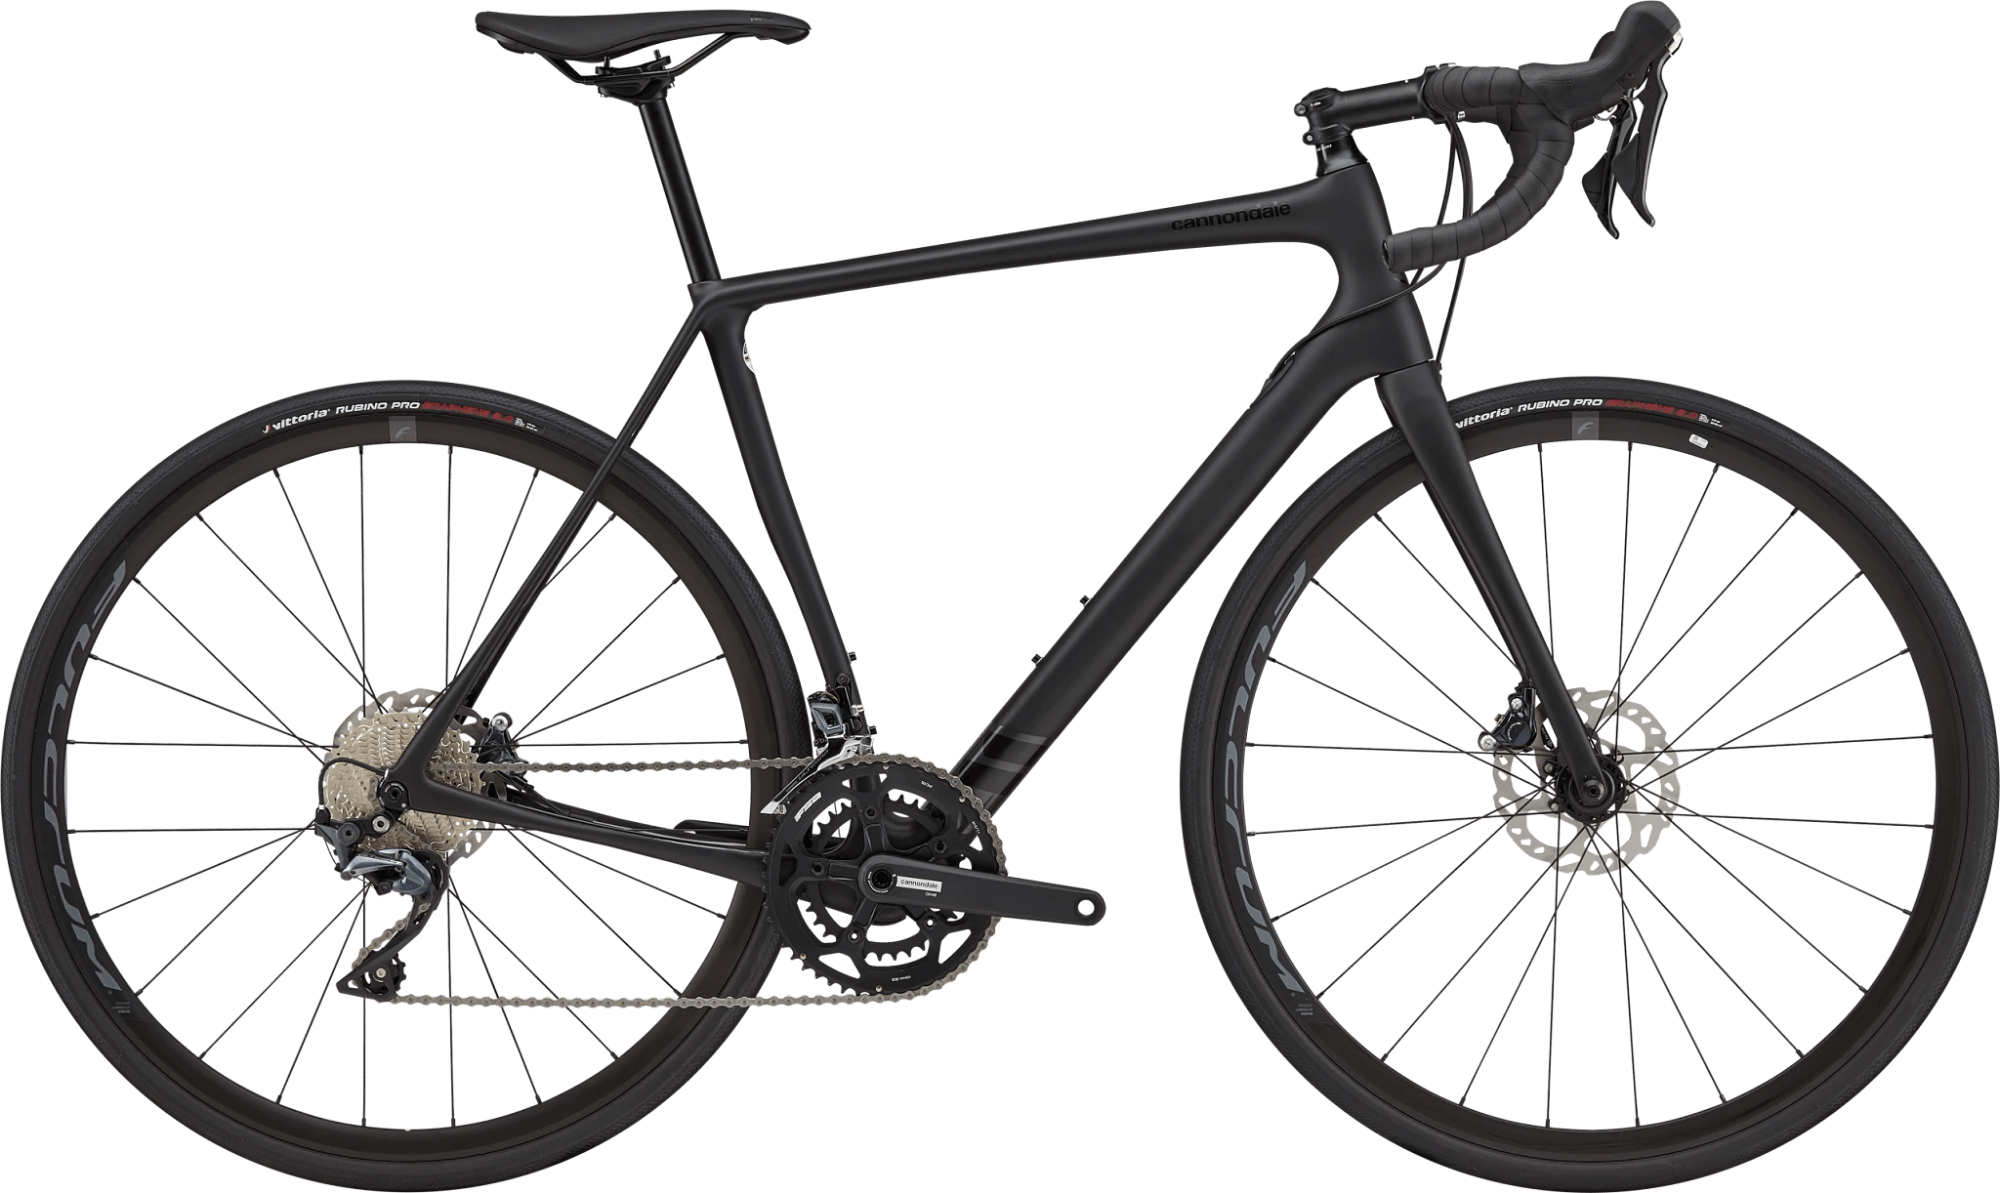 Cannondale Synapse Carbon Ultegra 2021 - Cycles Galleria Melbourne